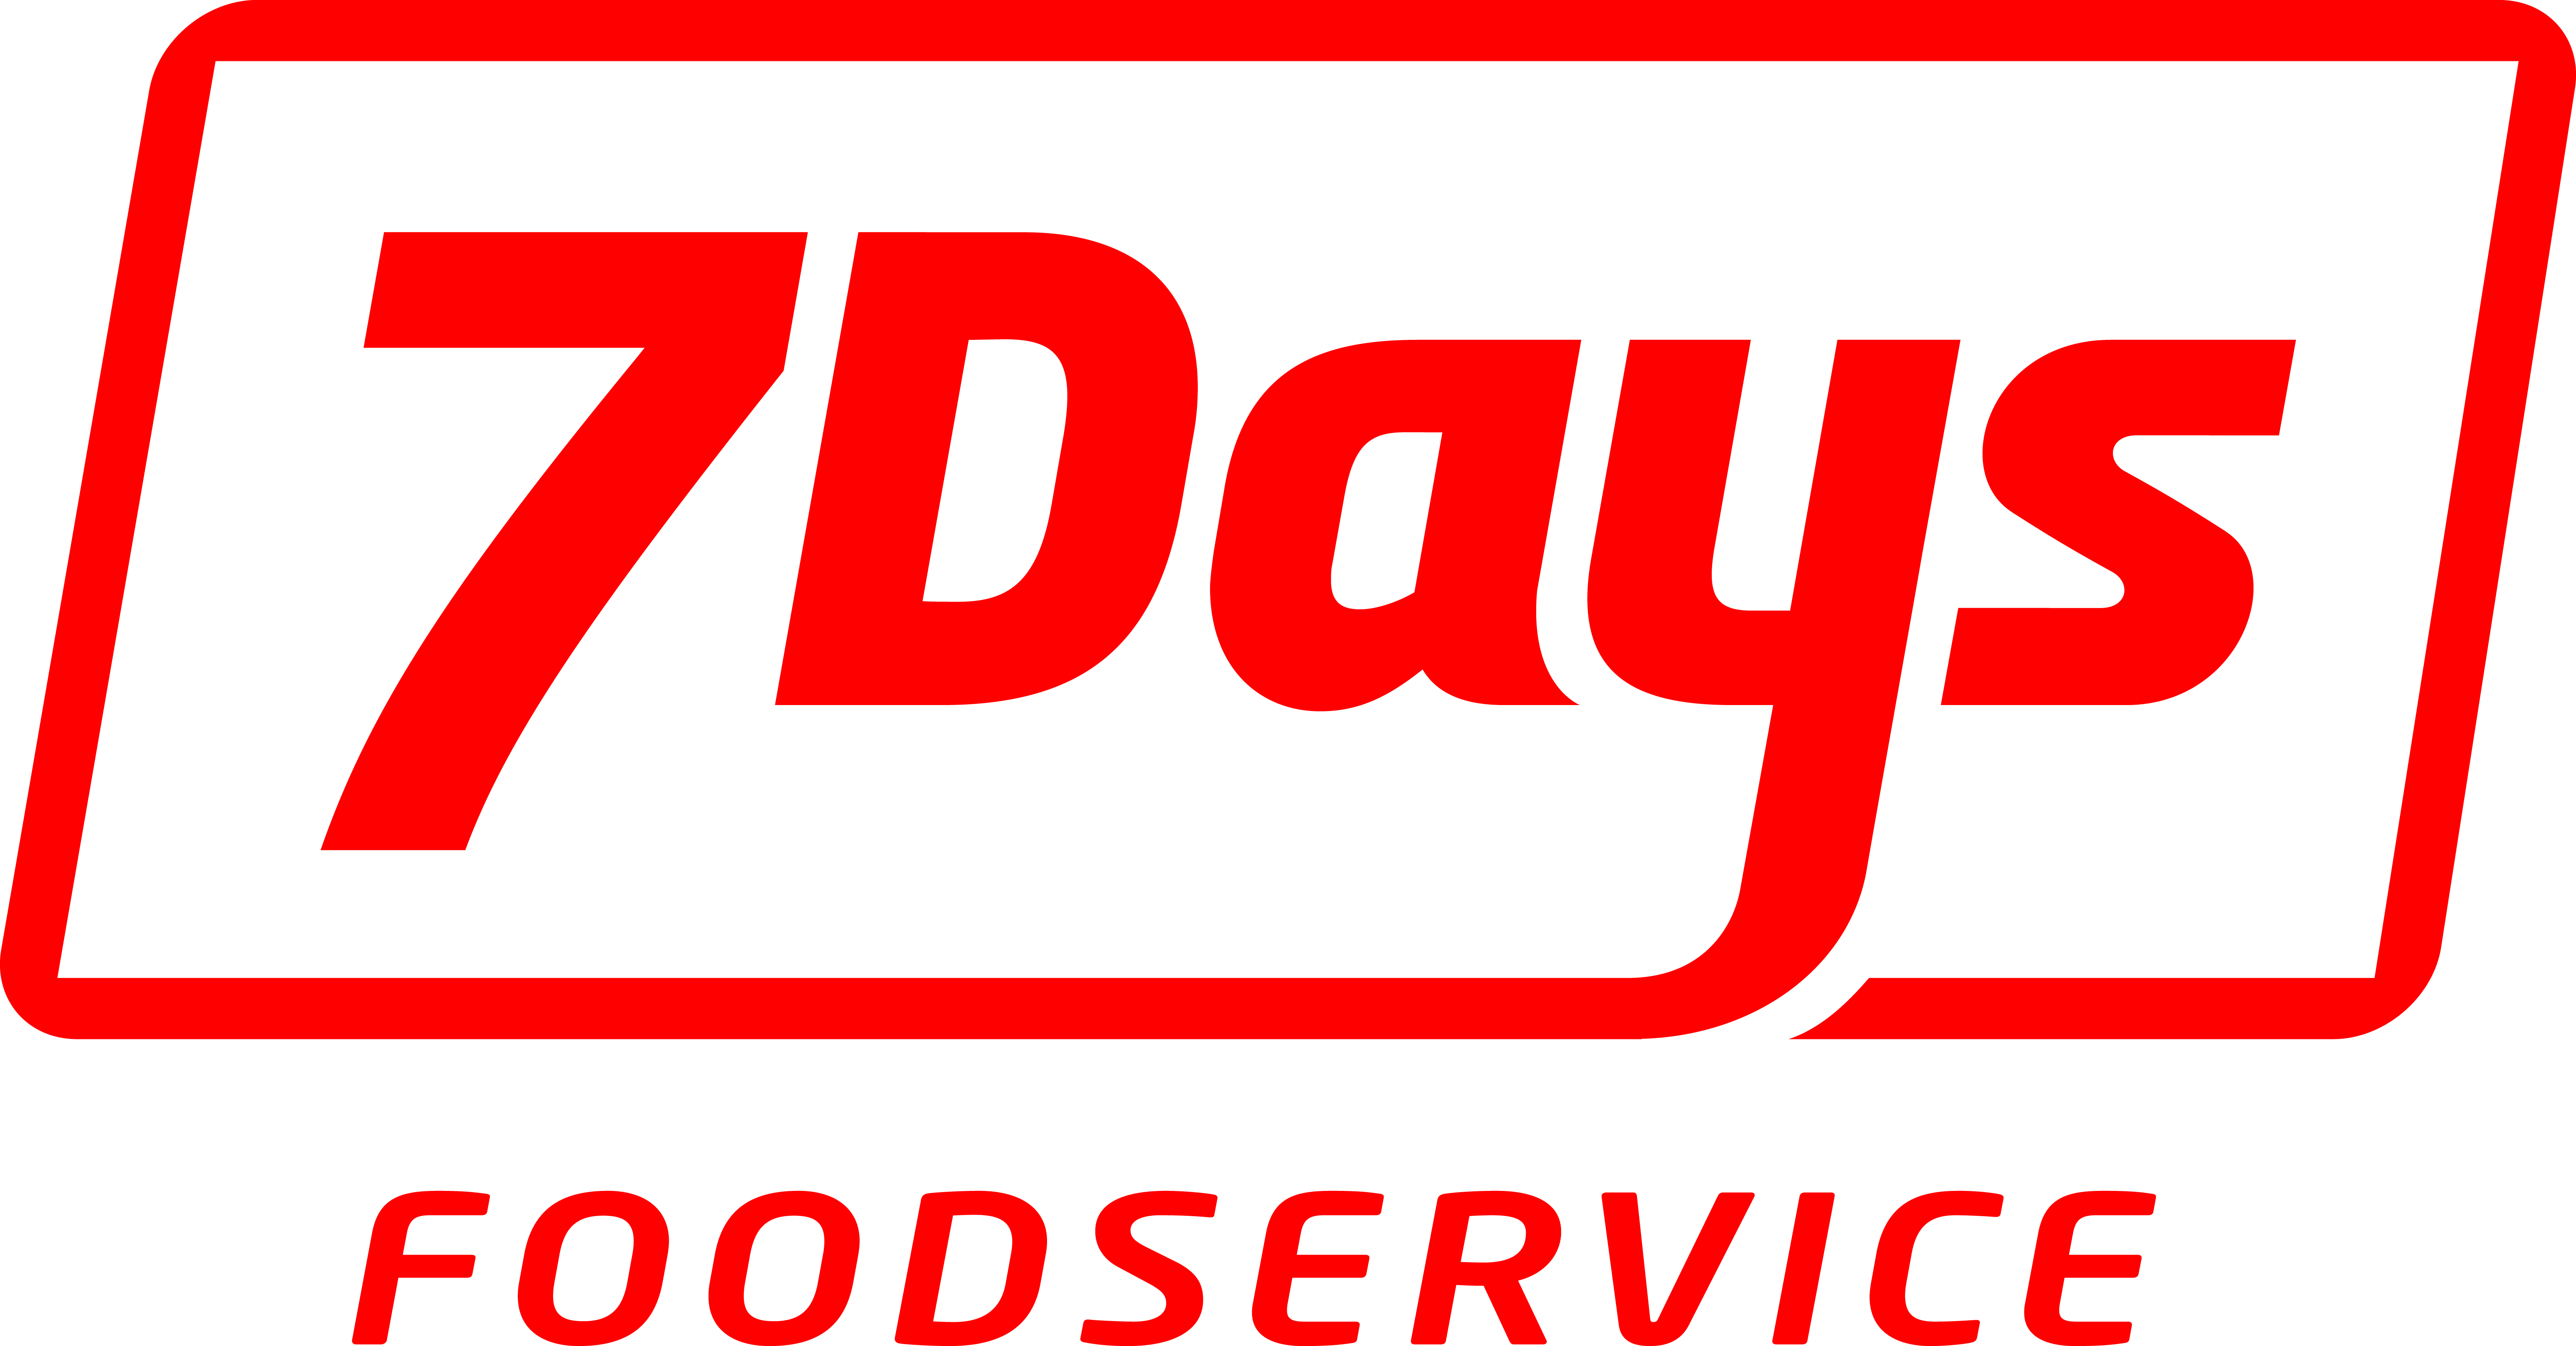 7Days Foodservice